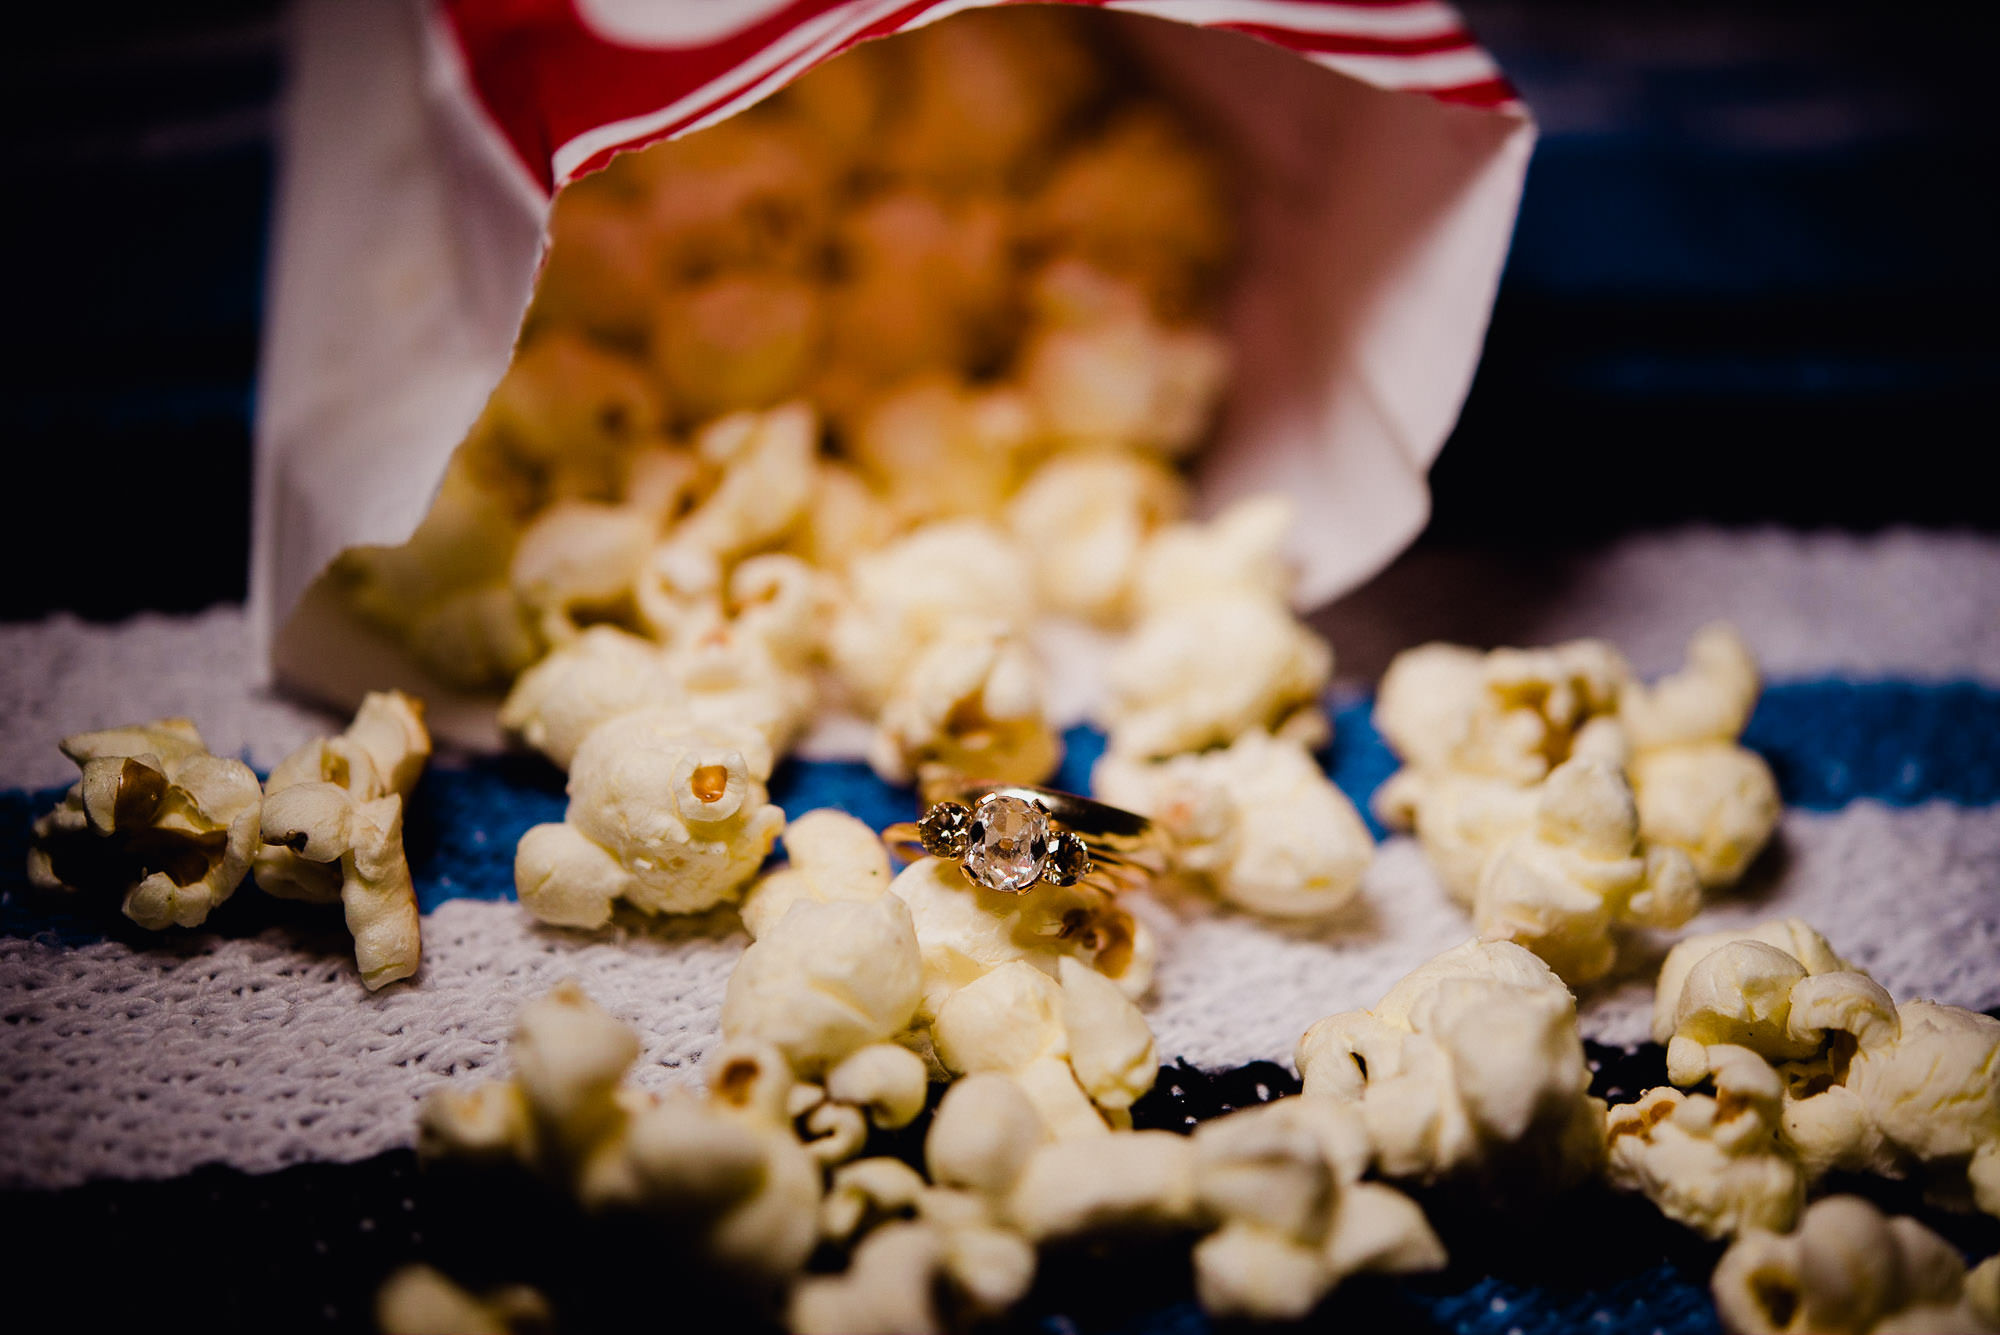 bell and bird engagement ring, ring detail shot on popcorn, creative engagement ring photo